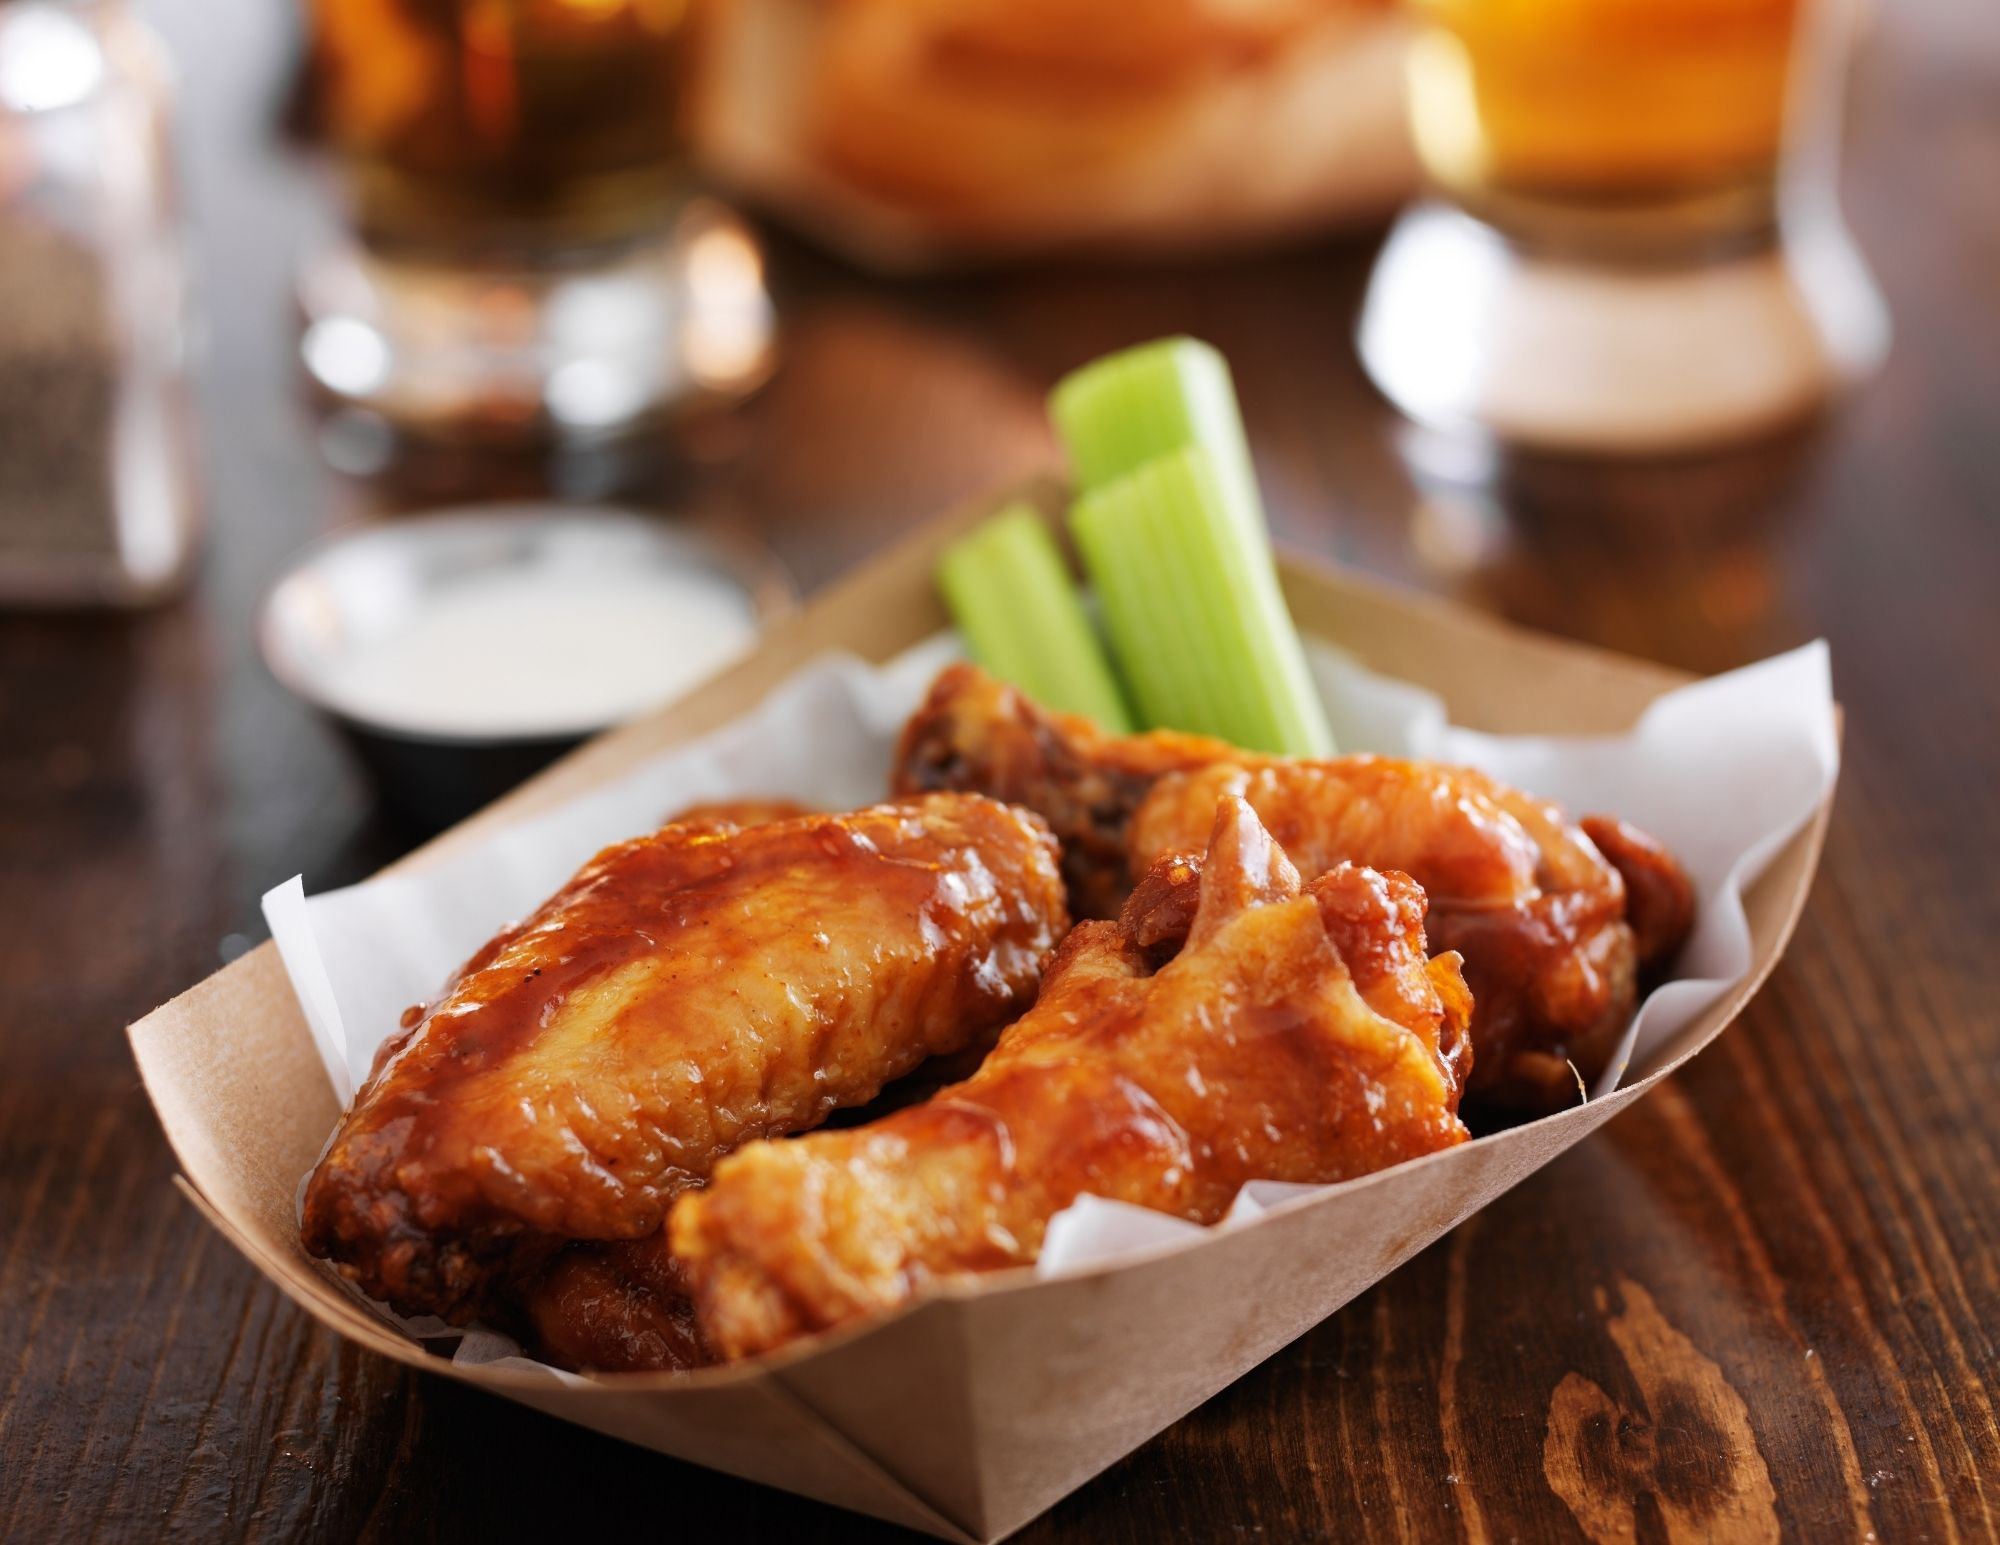 A plate of yummy wings and celery